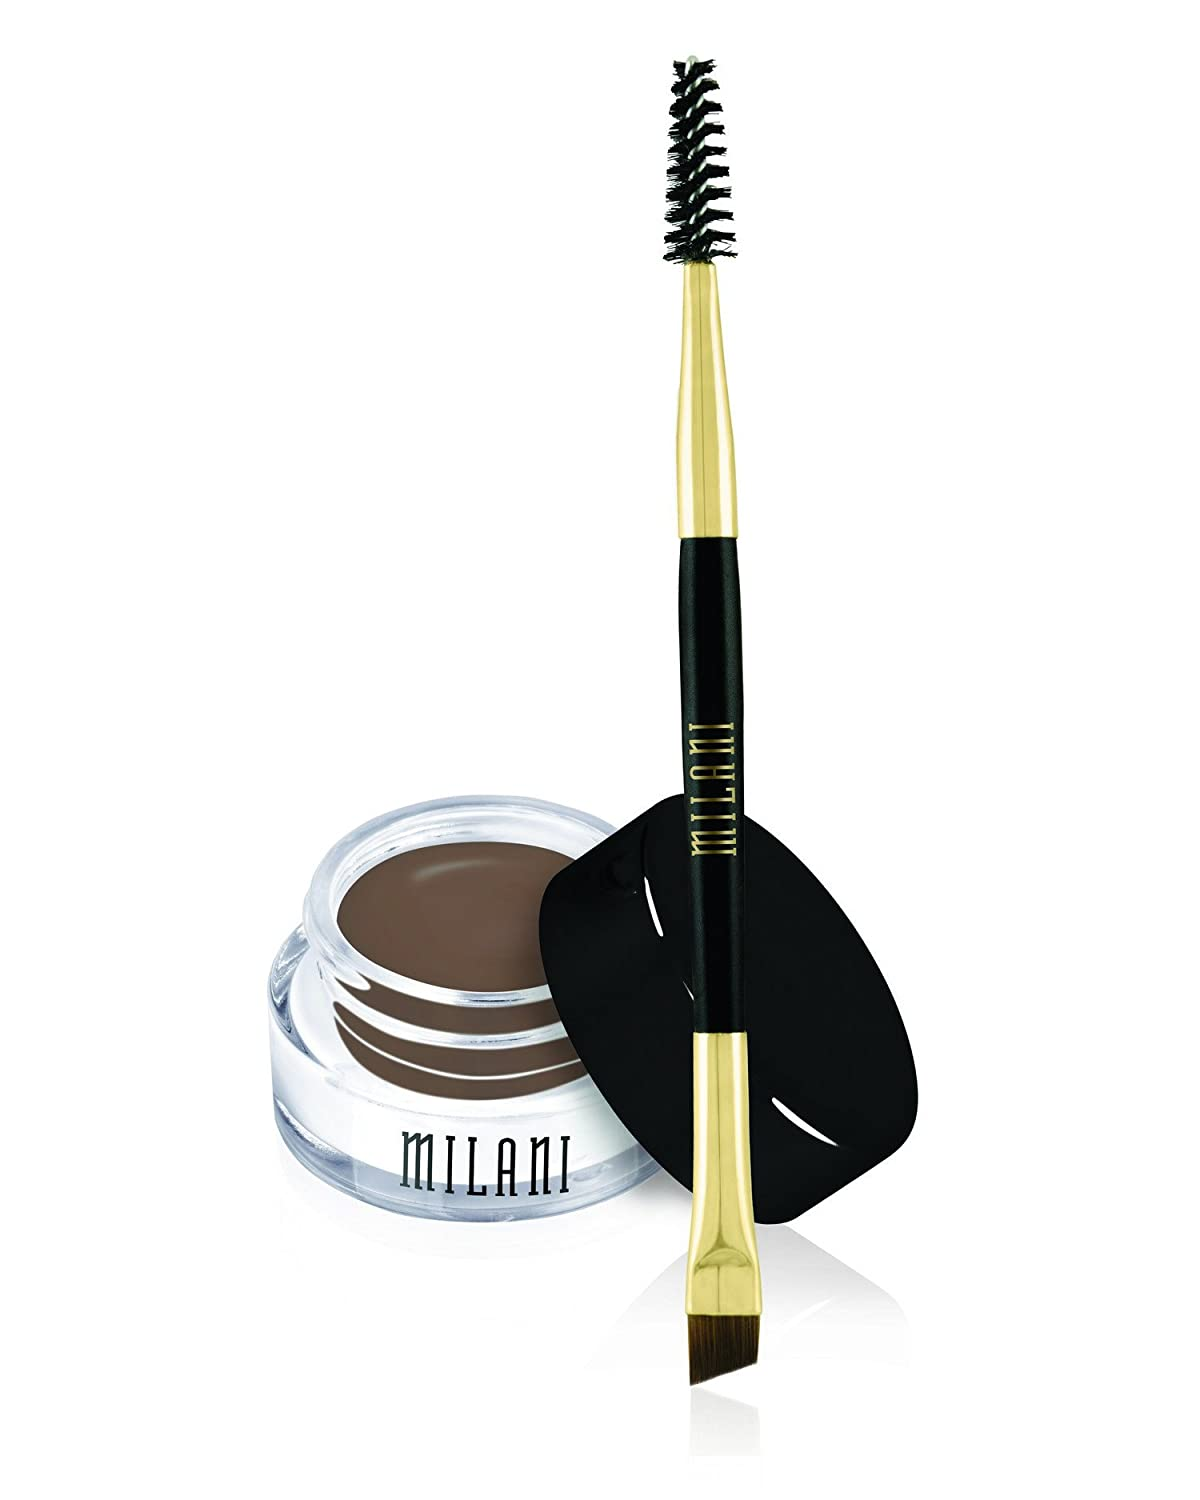 Milani Stay Put Brow Color, Dark Brown, 0.09 Ounce (Packaging May Vary)